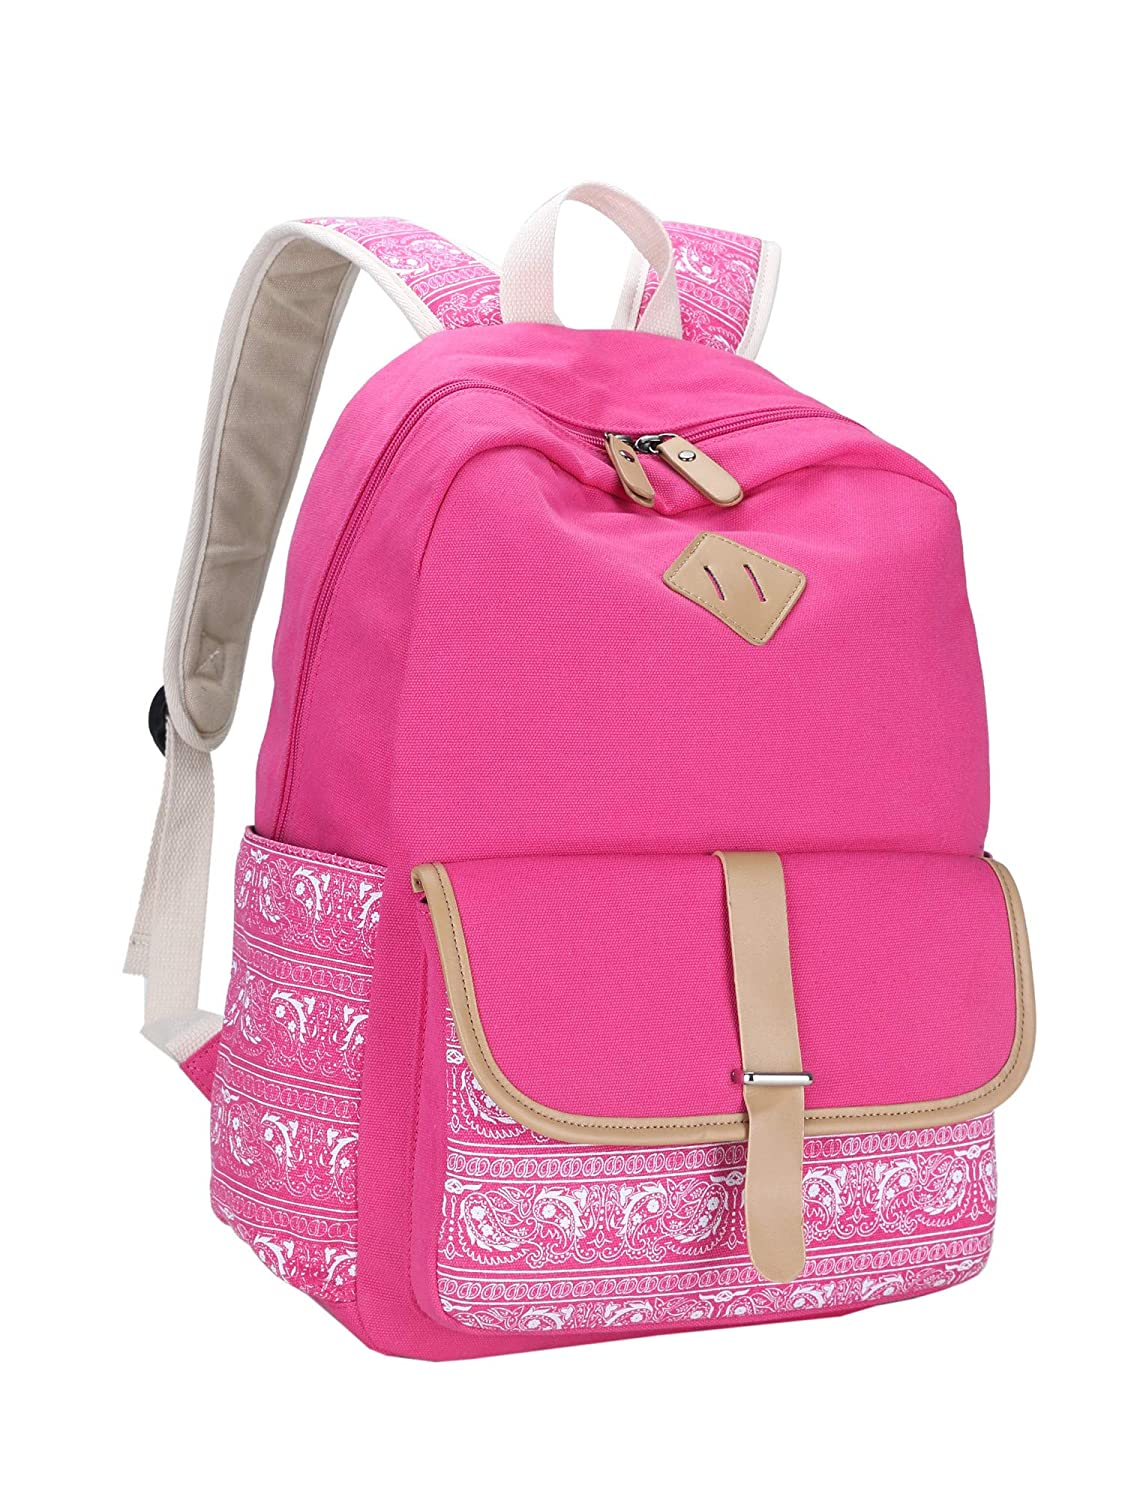 513eb8533a6b Leaper Cute Canvas Backpack for Girls School Bag Travel Daypack Rose 8812